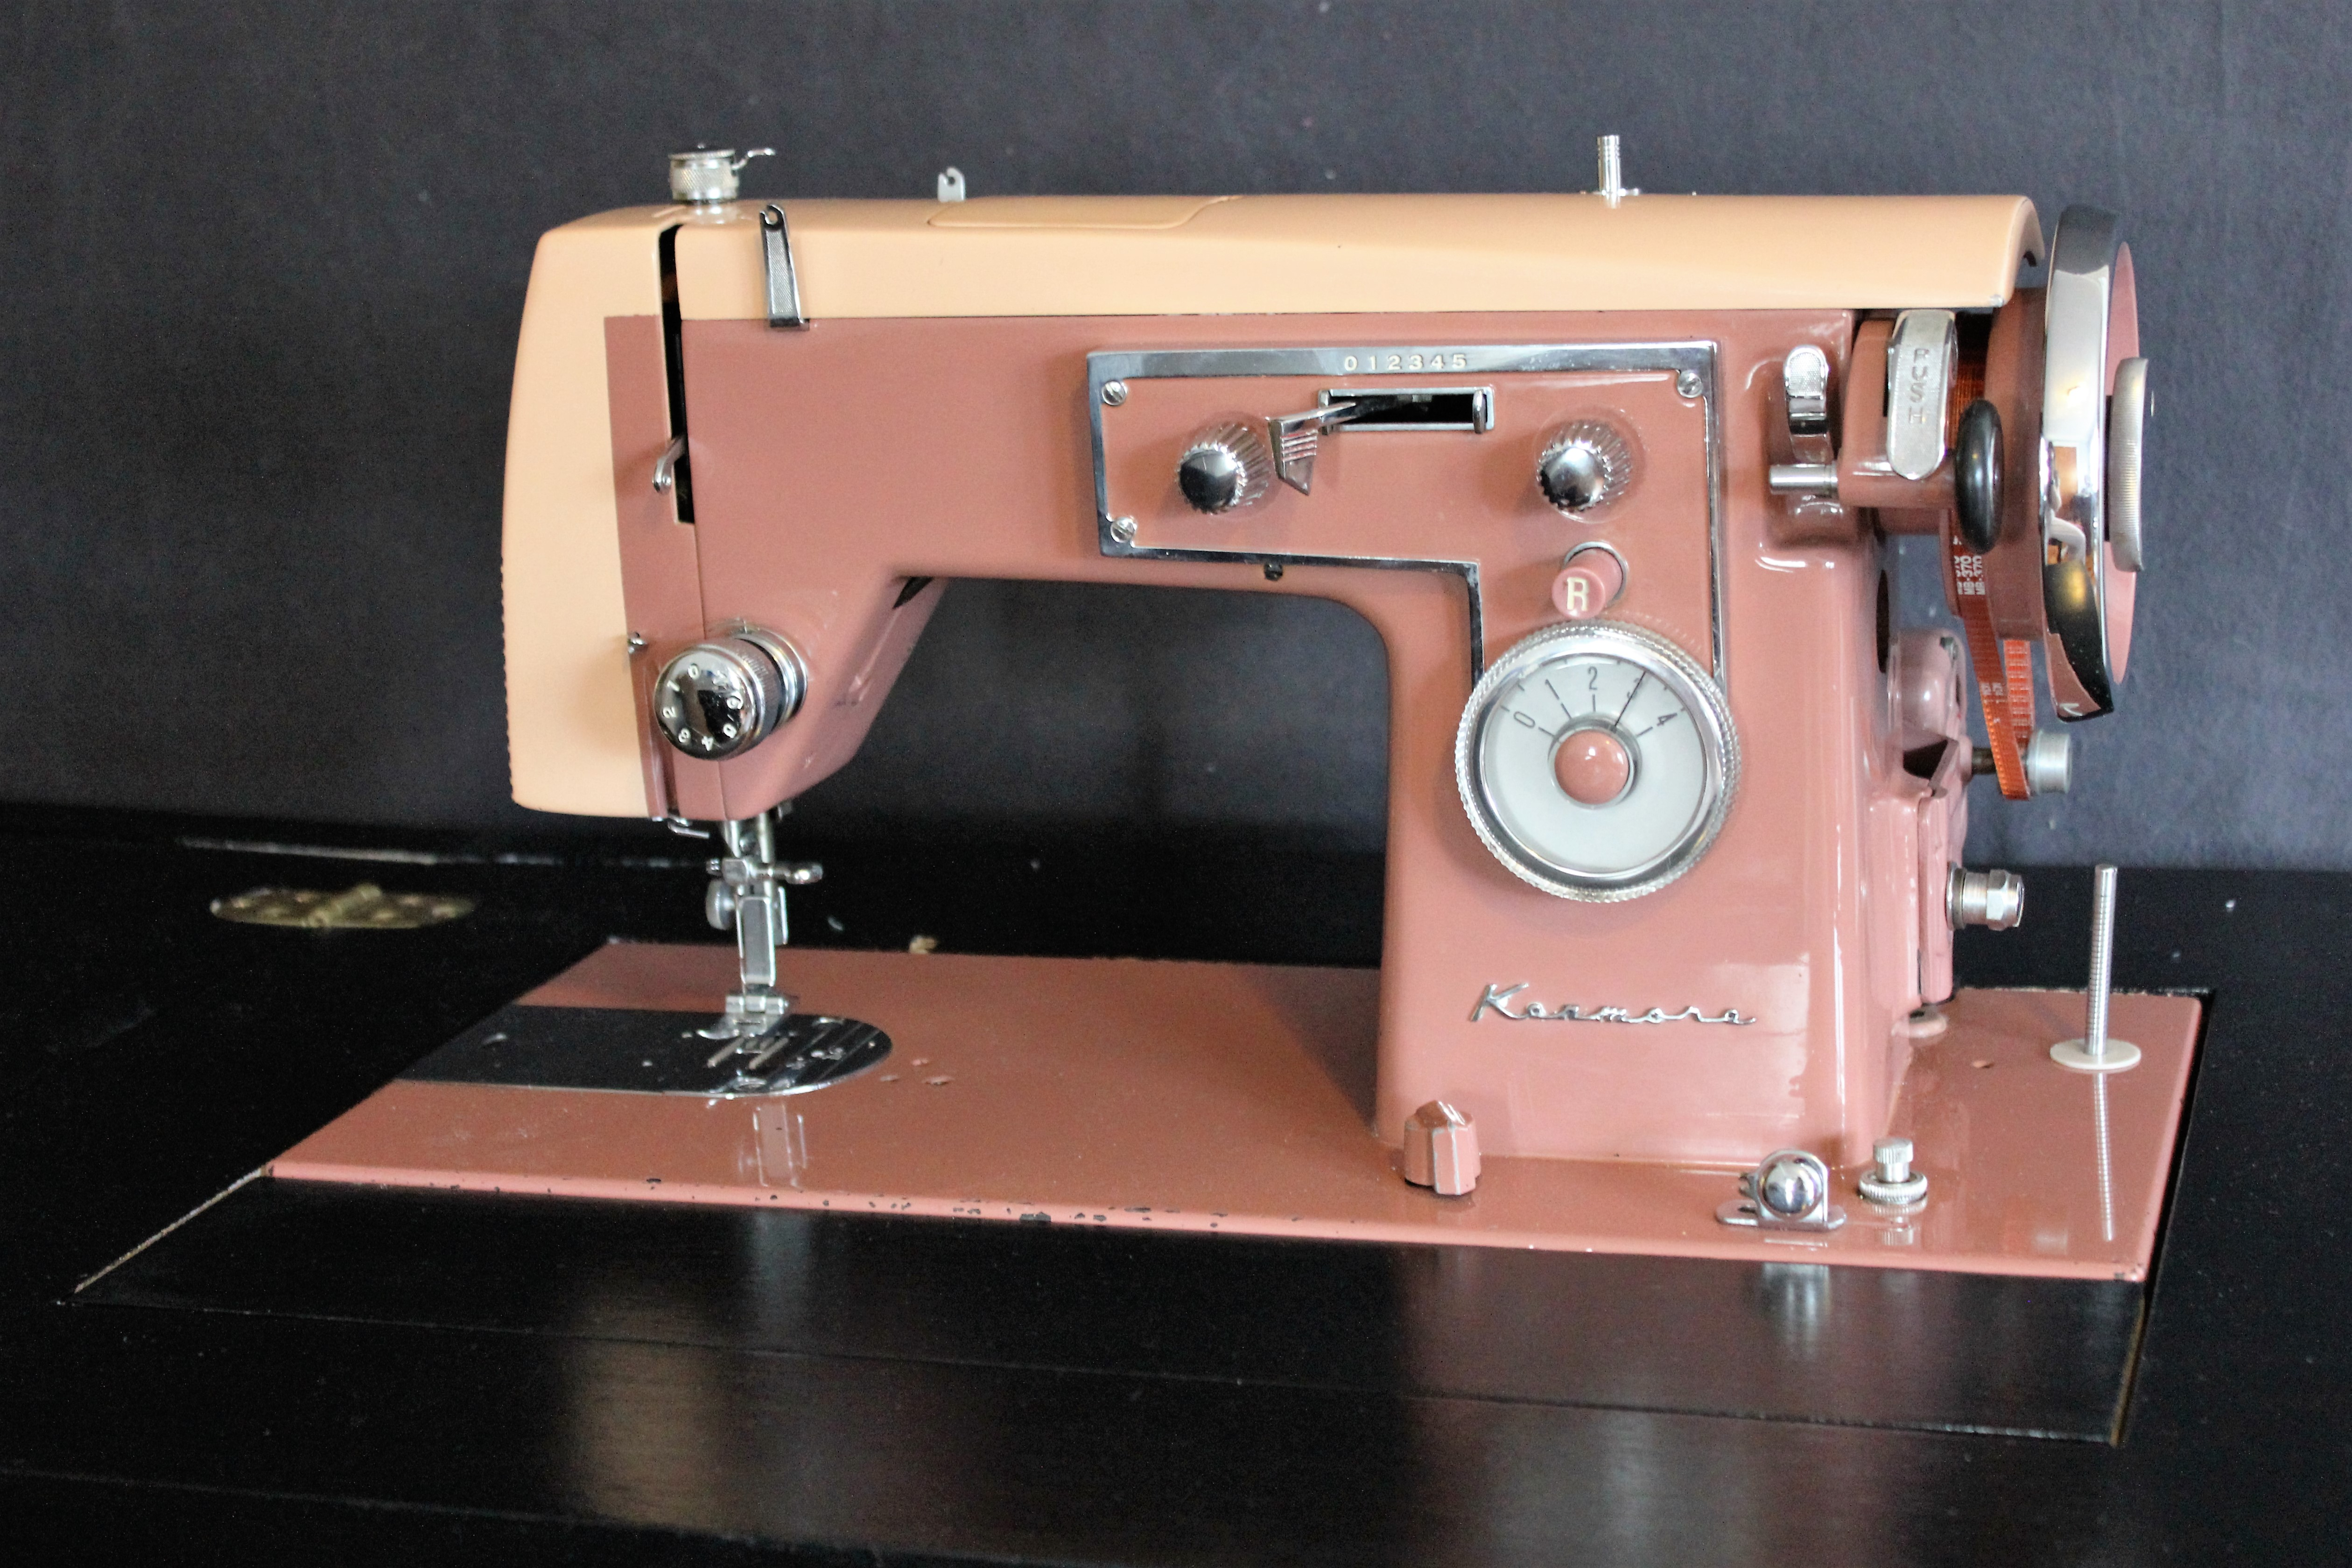 Kenmore 47, restored by Stitchified